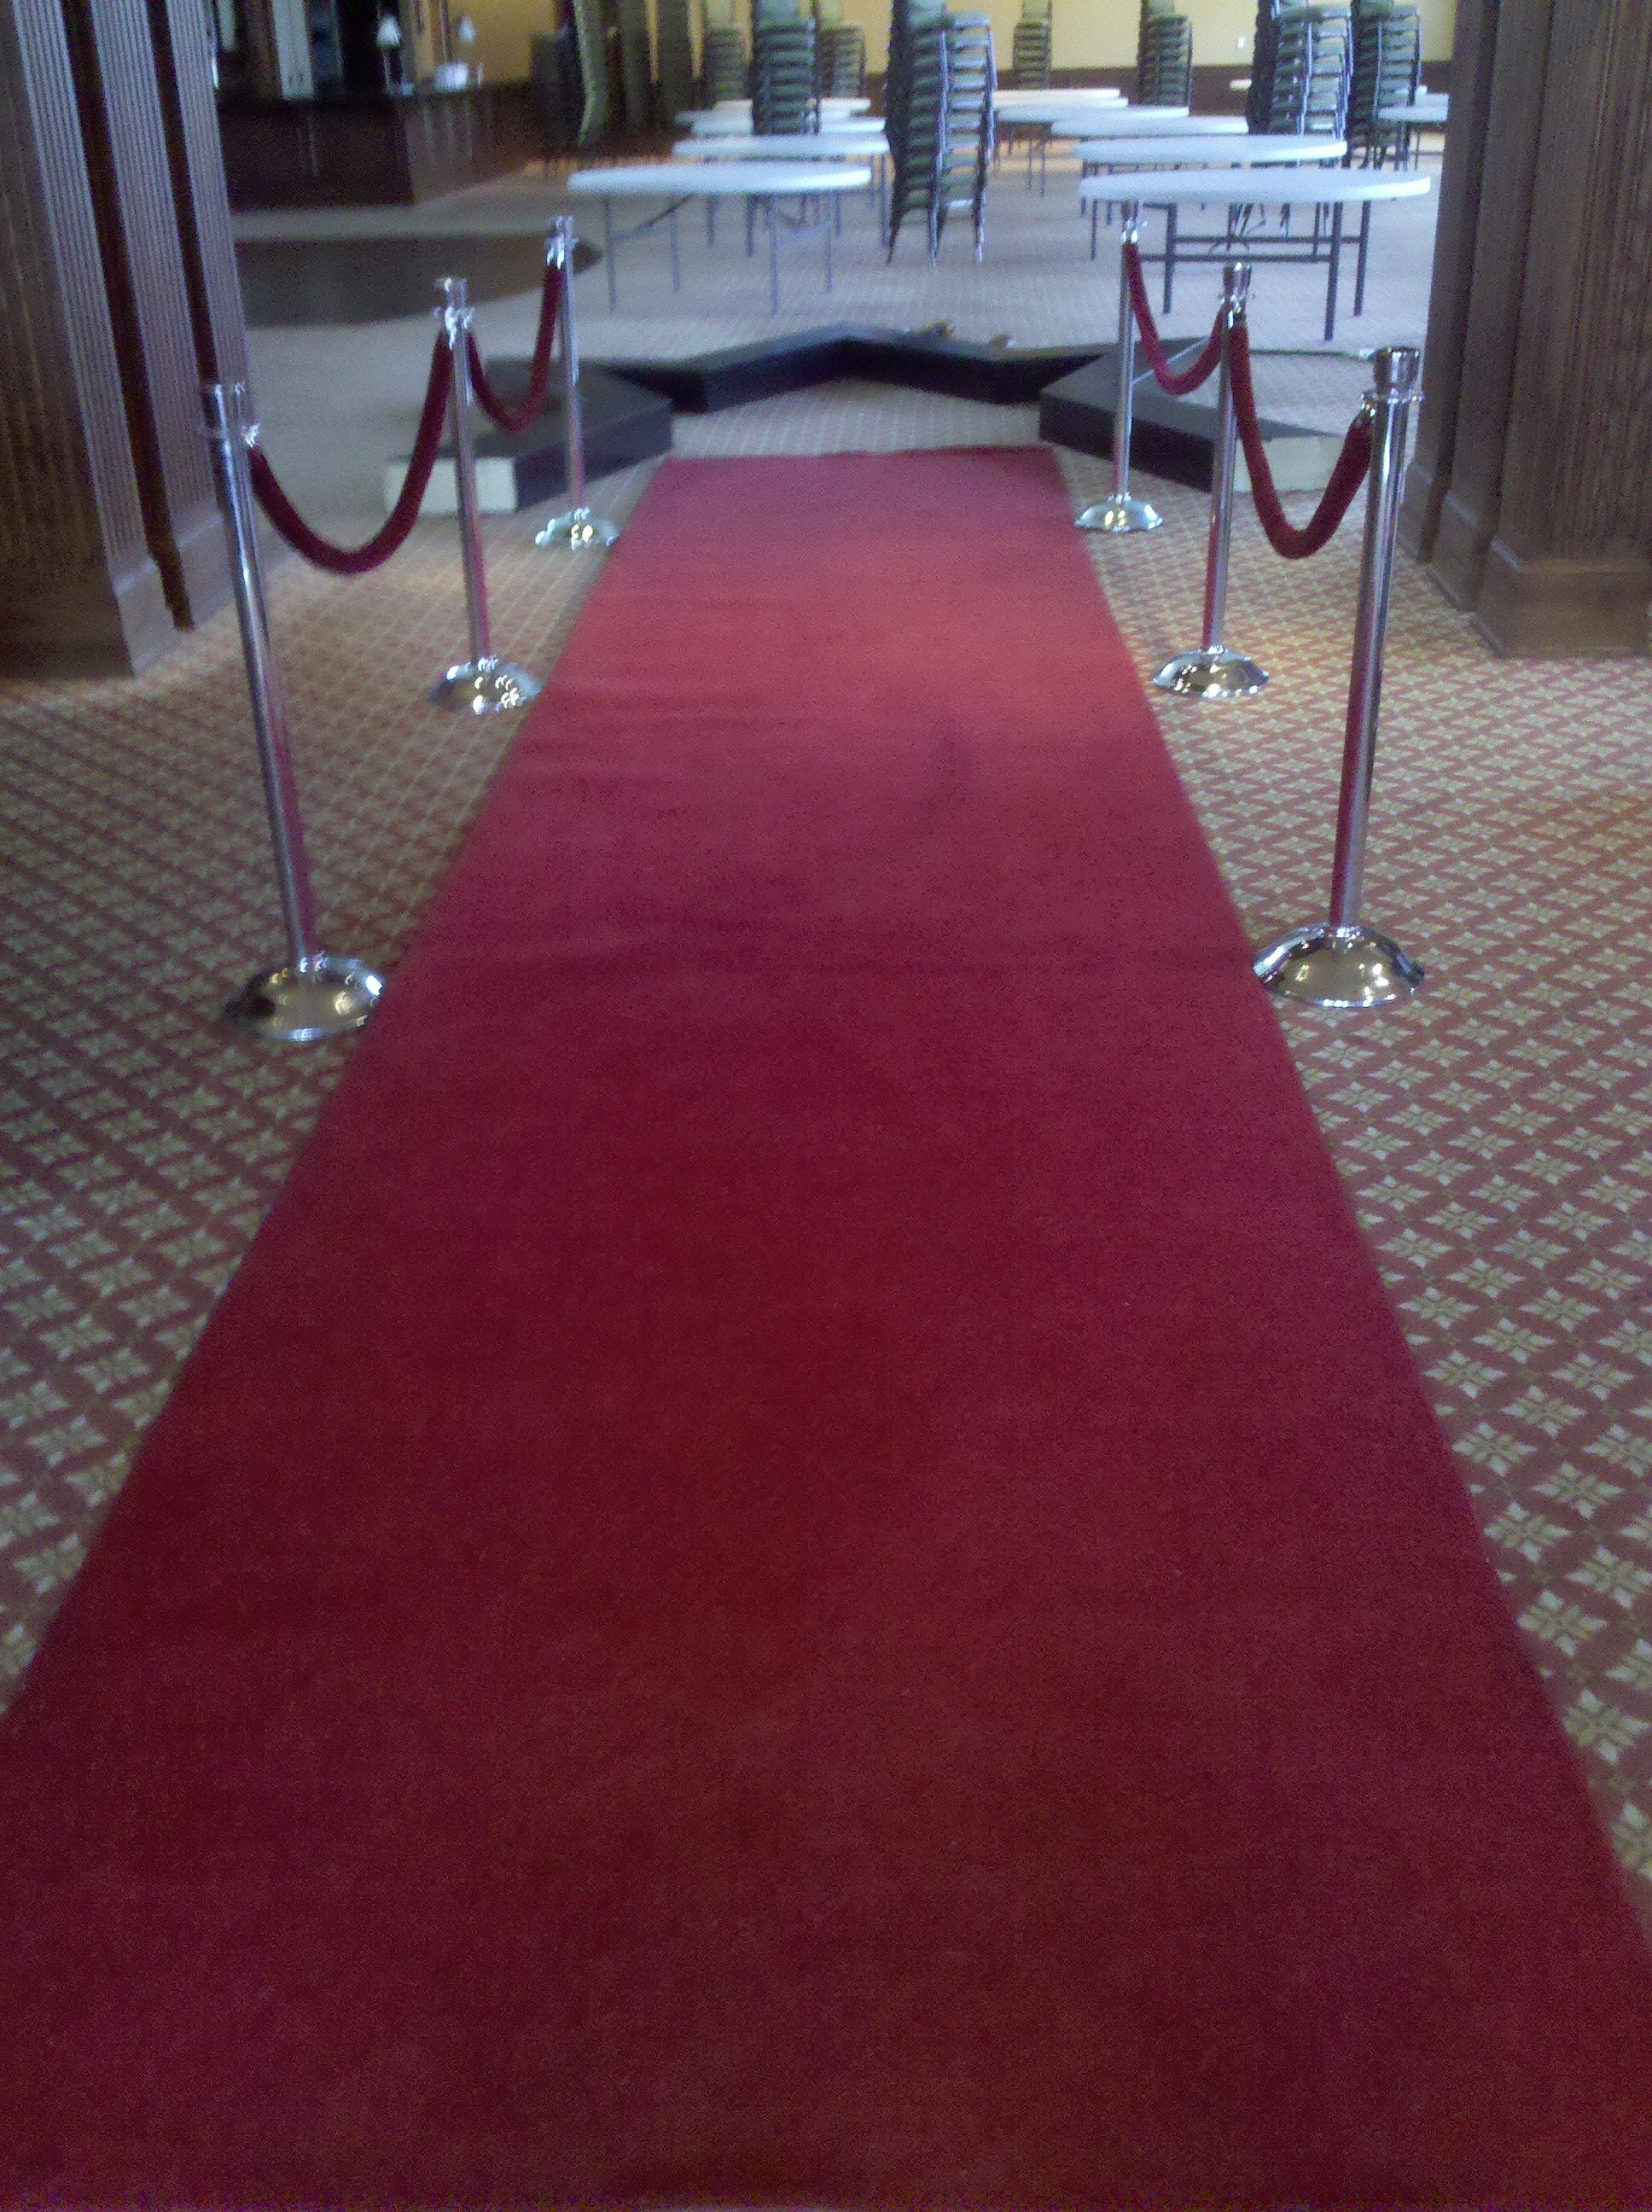 Rent Our 25 Red Carpet And Stanchions With Velvet Ropes For Your Special Event Living Room Carpet Carpet Runner Red Carpet Runner